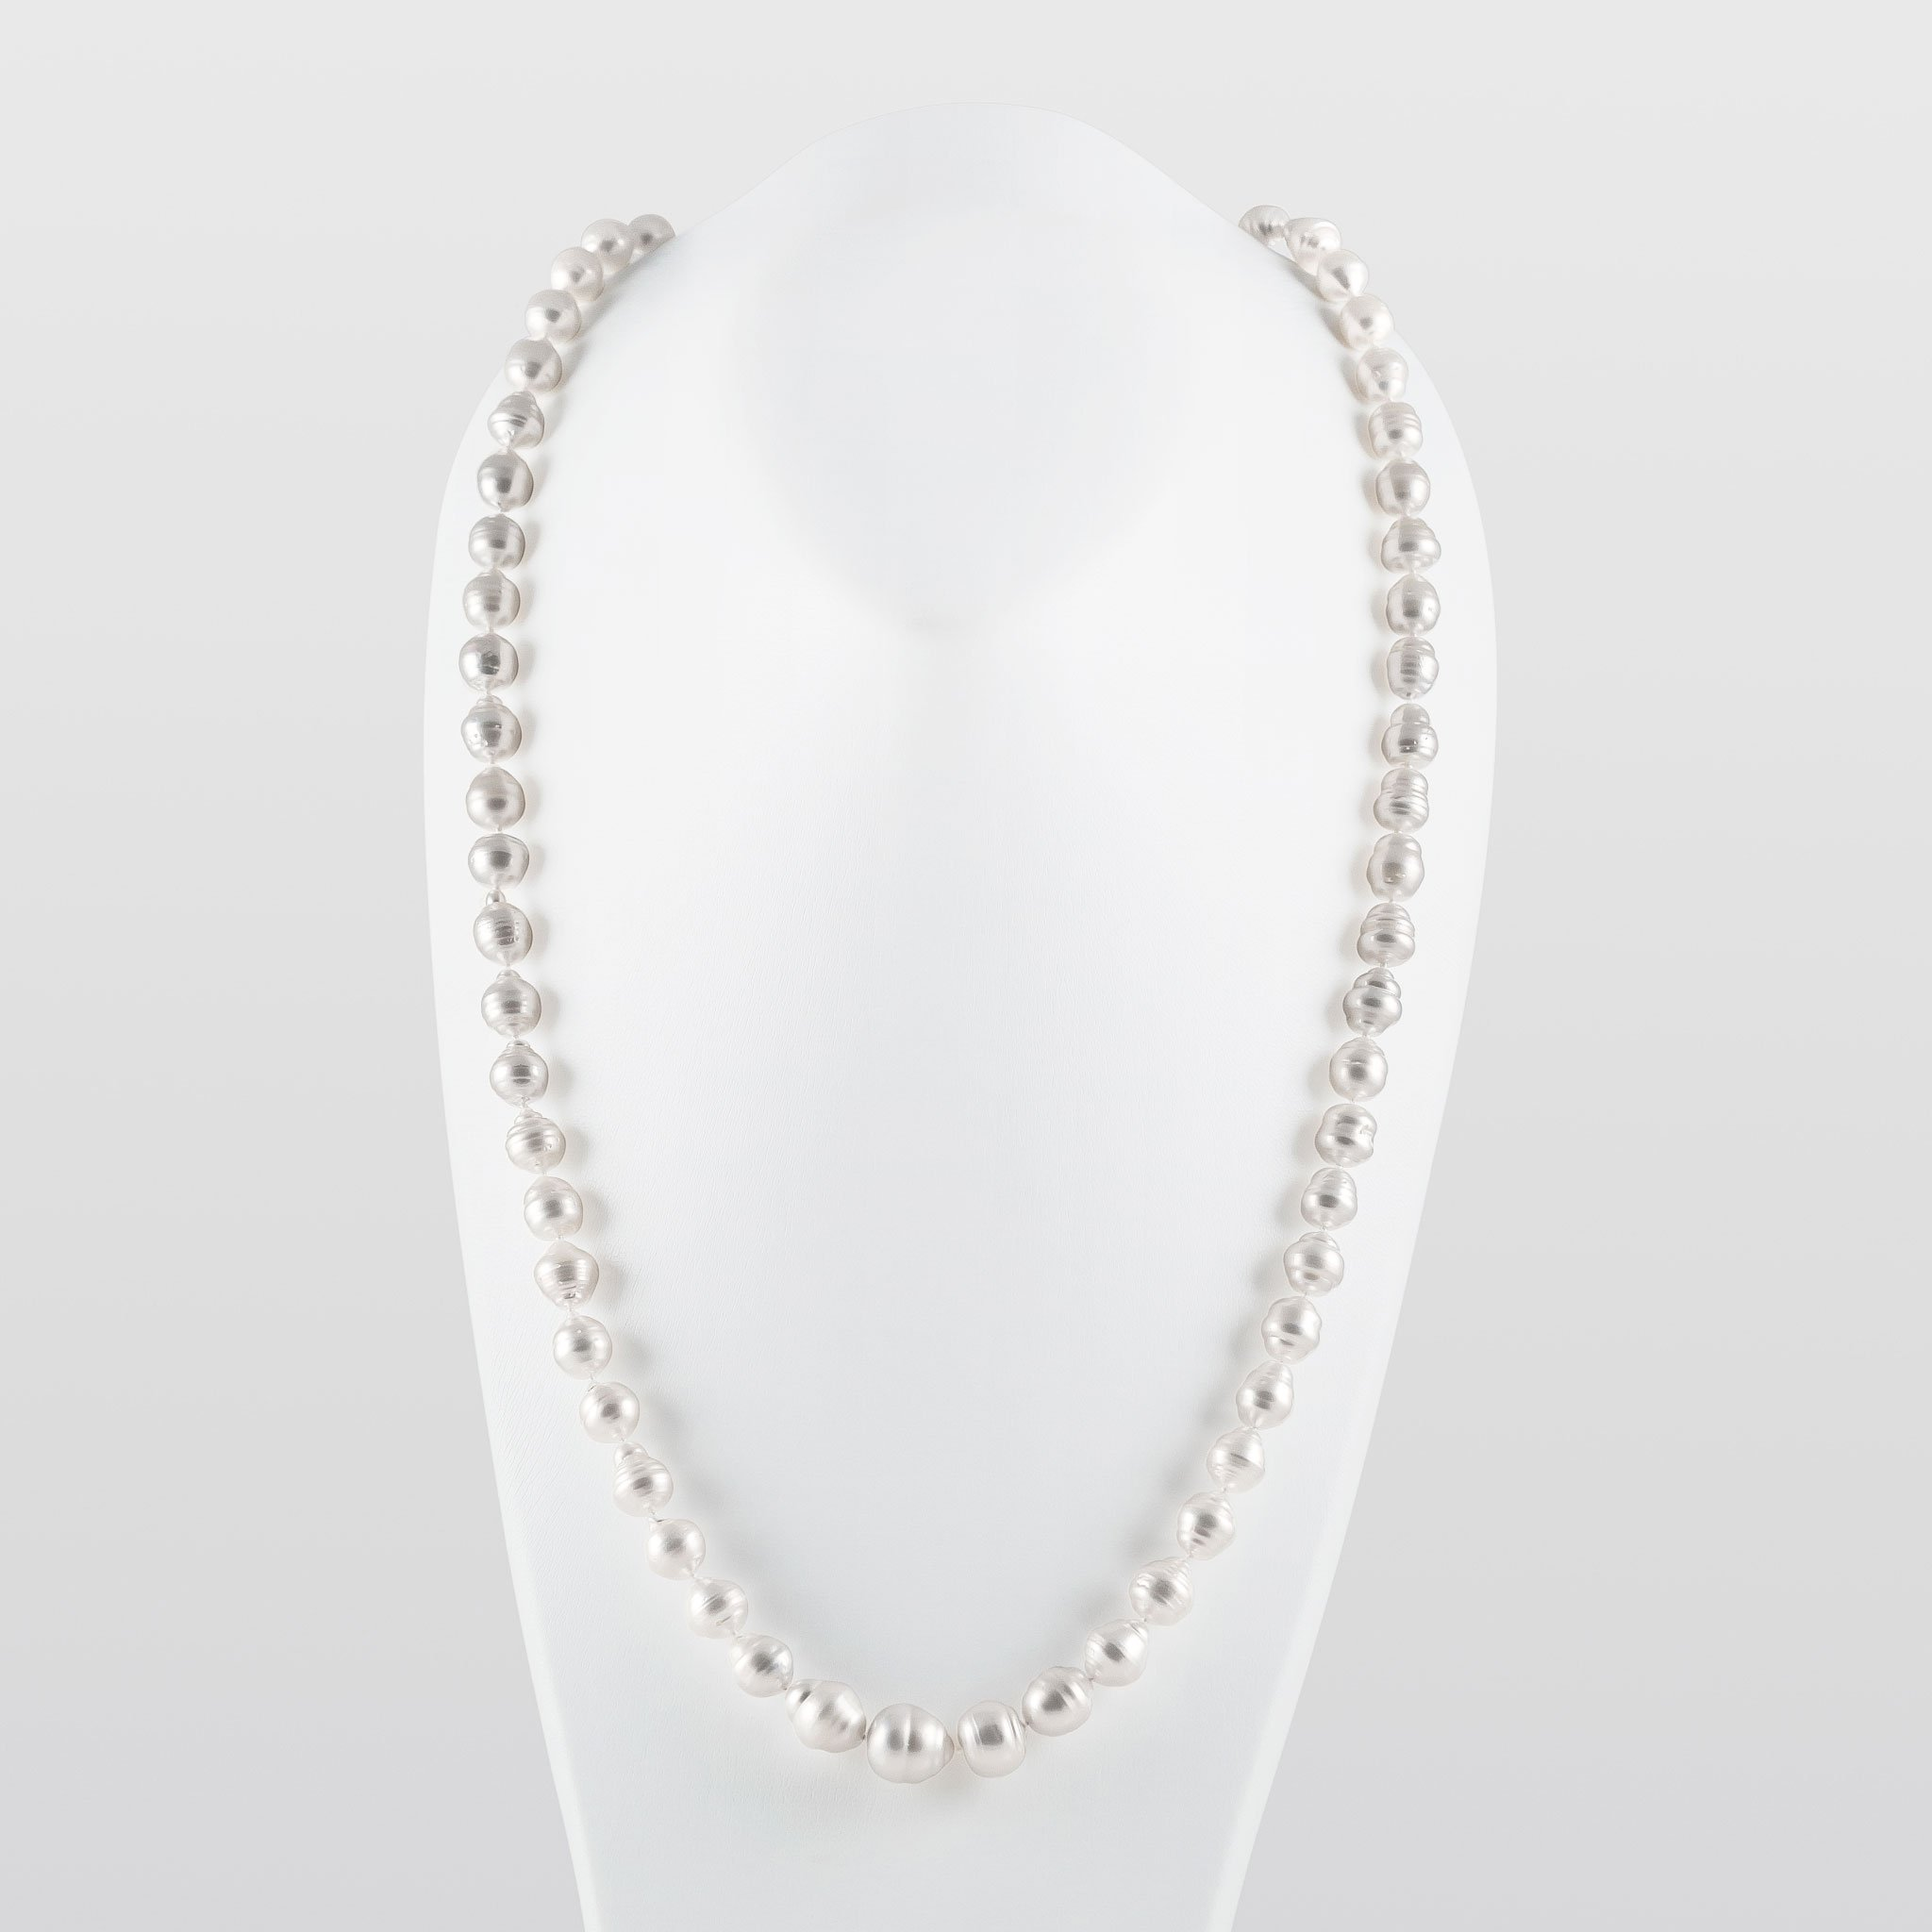 White South Sea Baroque Pearl Necklace AAA